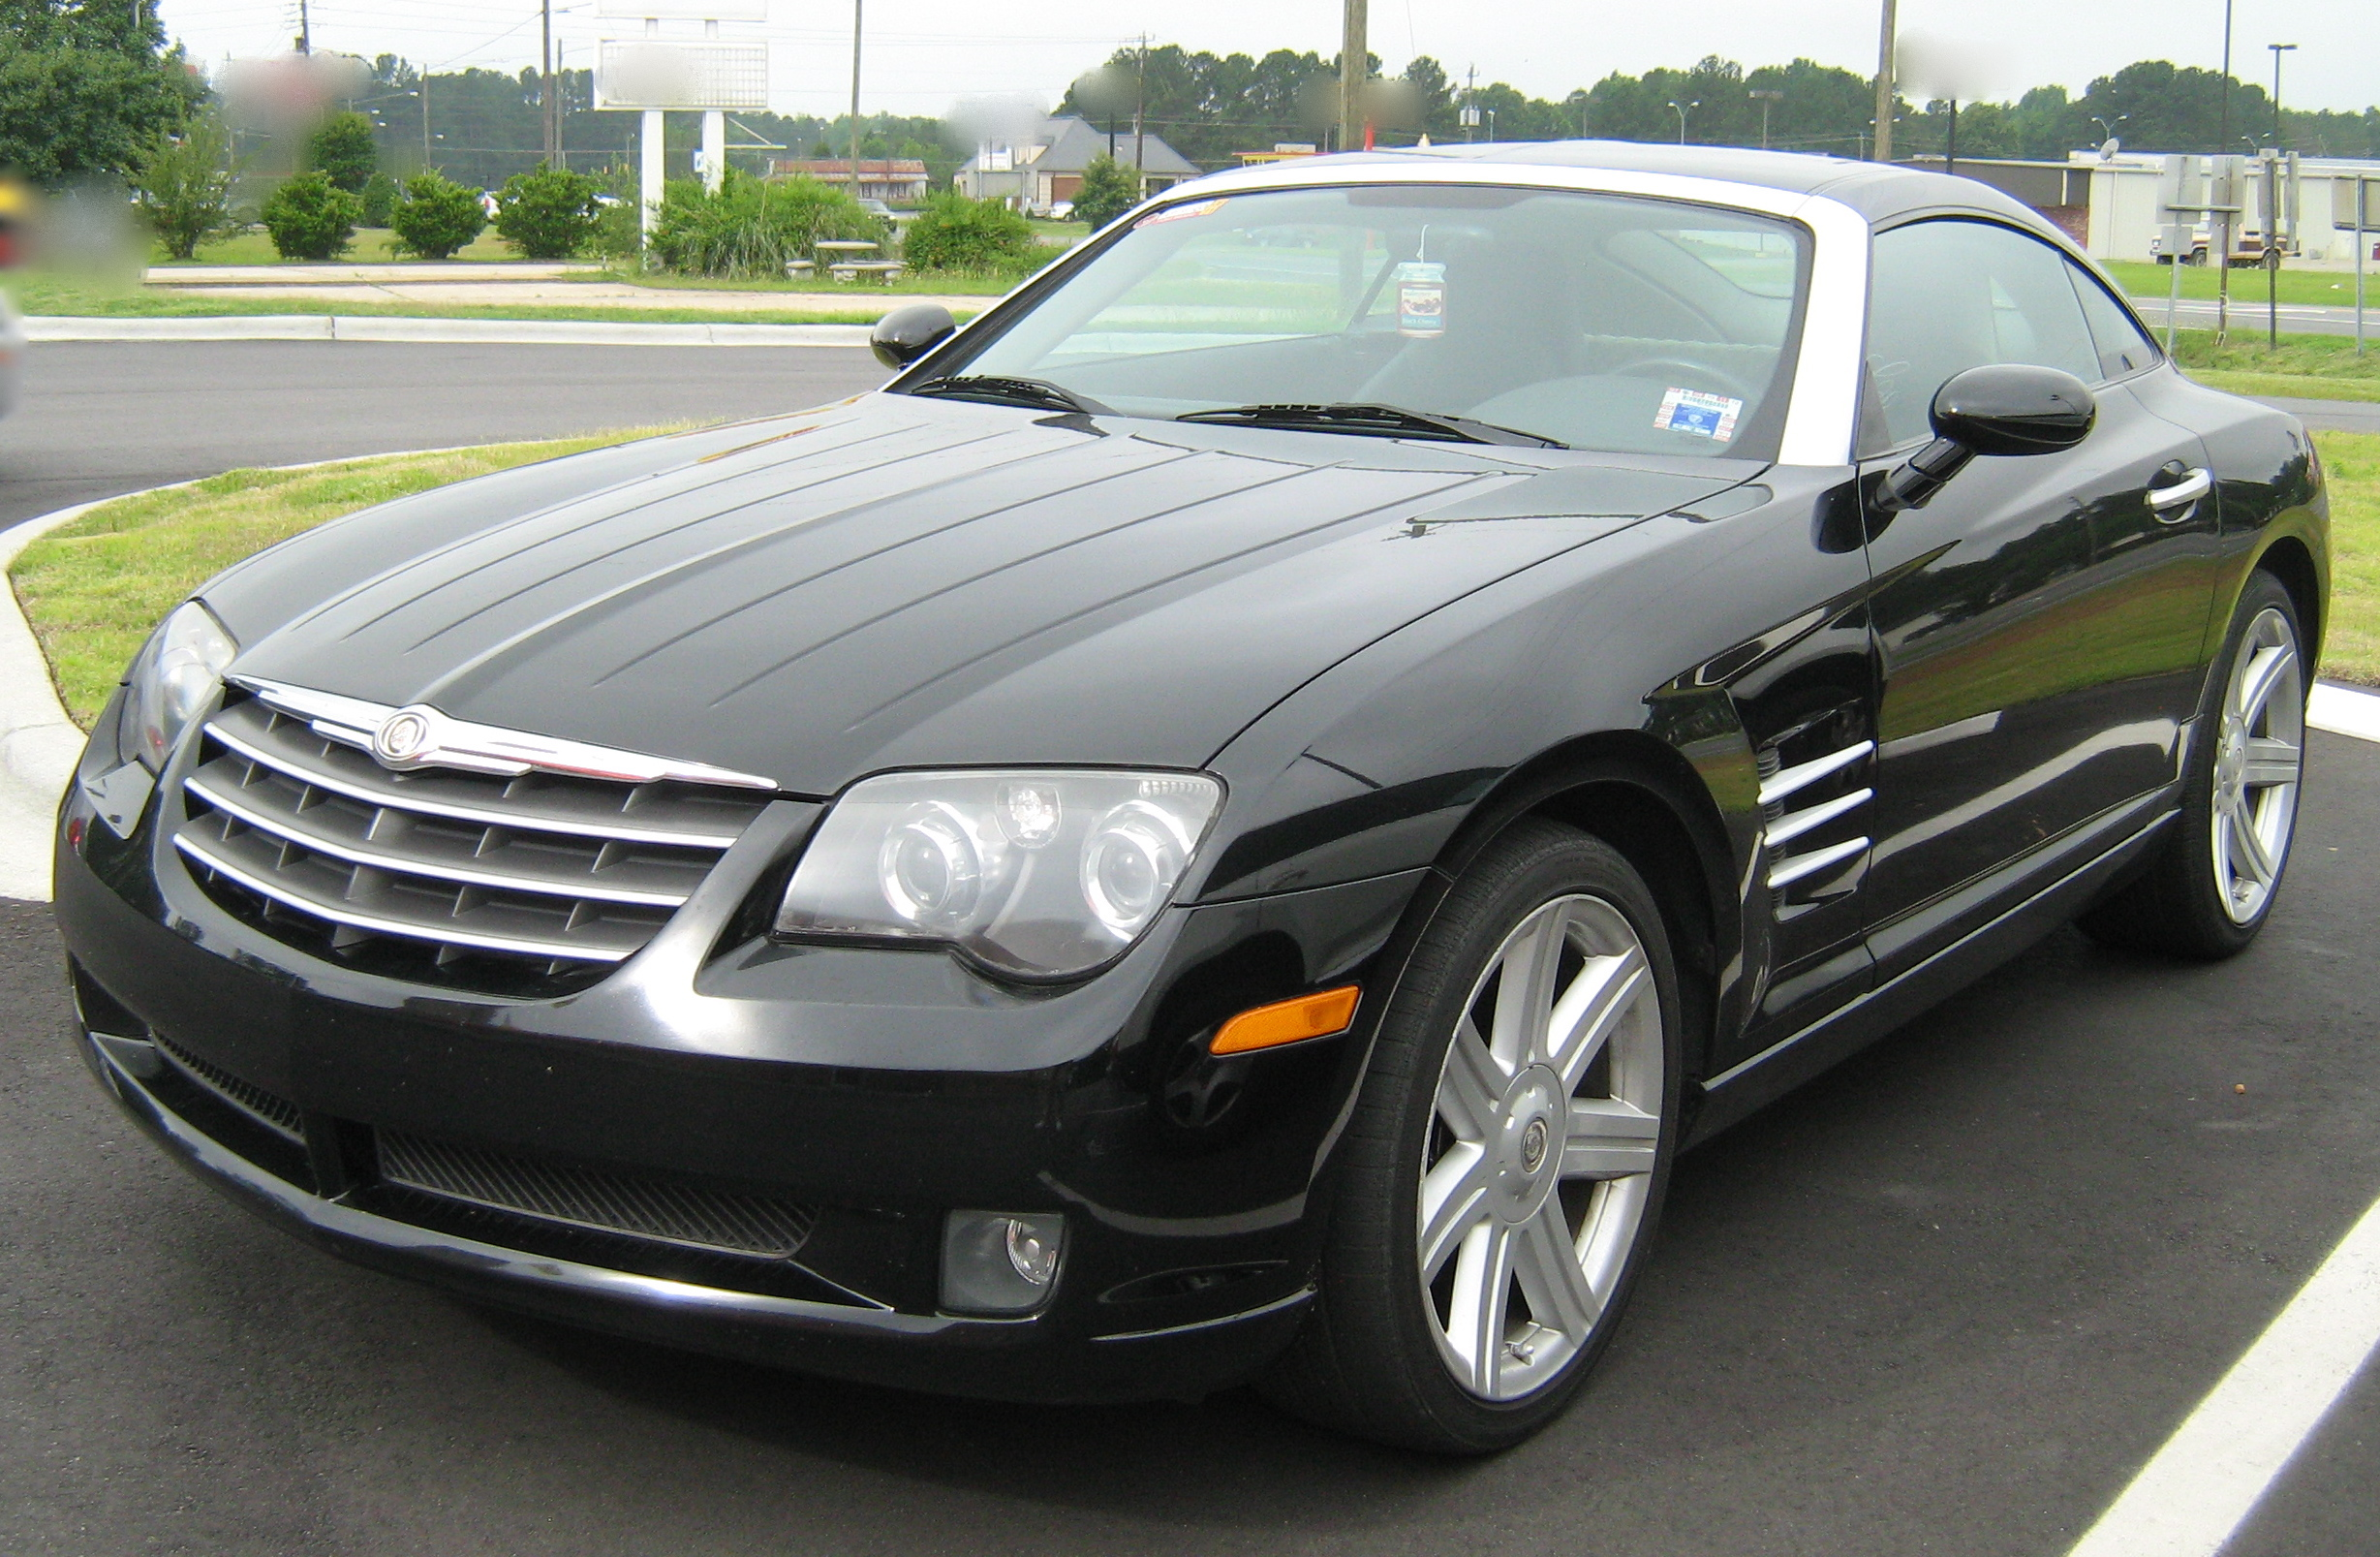 2004 chrysler crossfire coupe images pictures becuo. Cars Review. Best American Auto & Cars Review